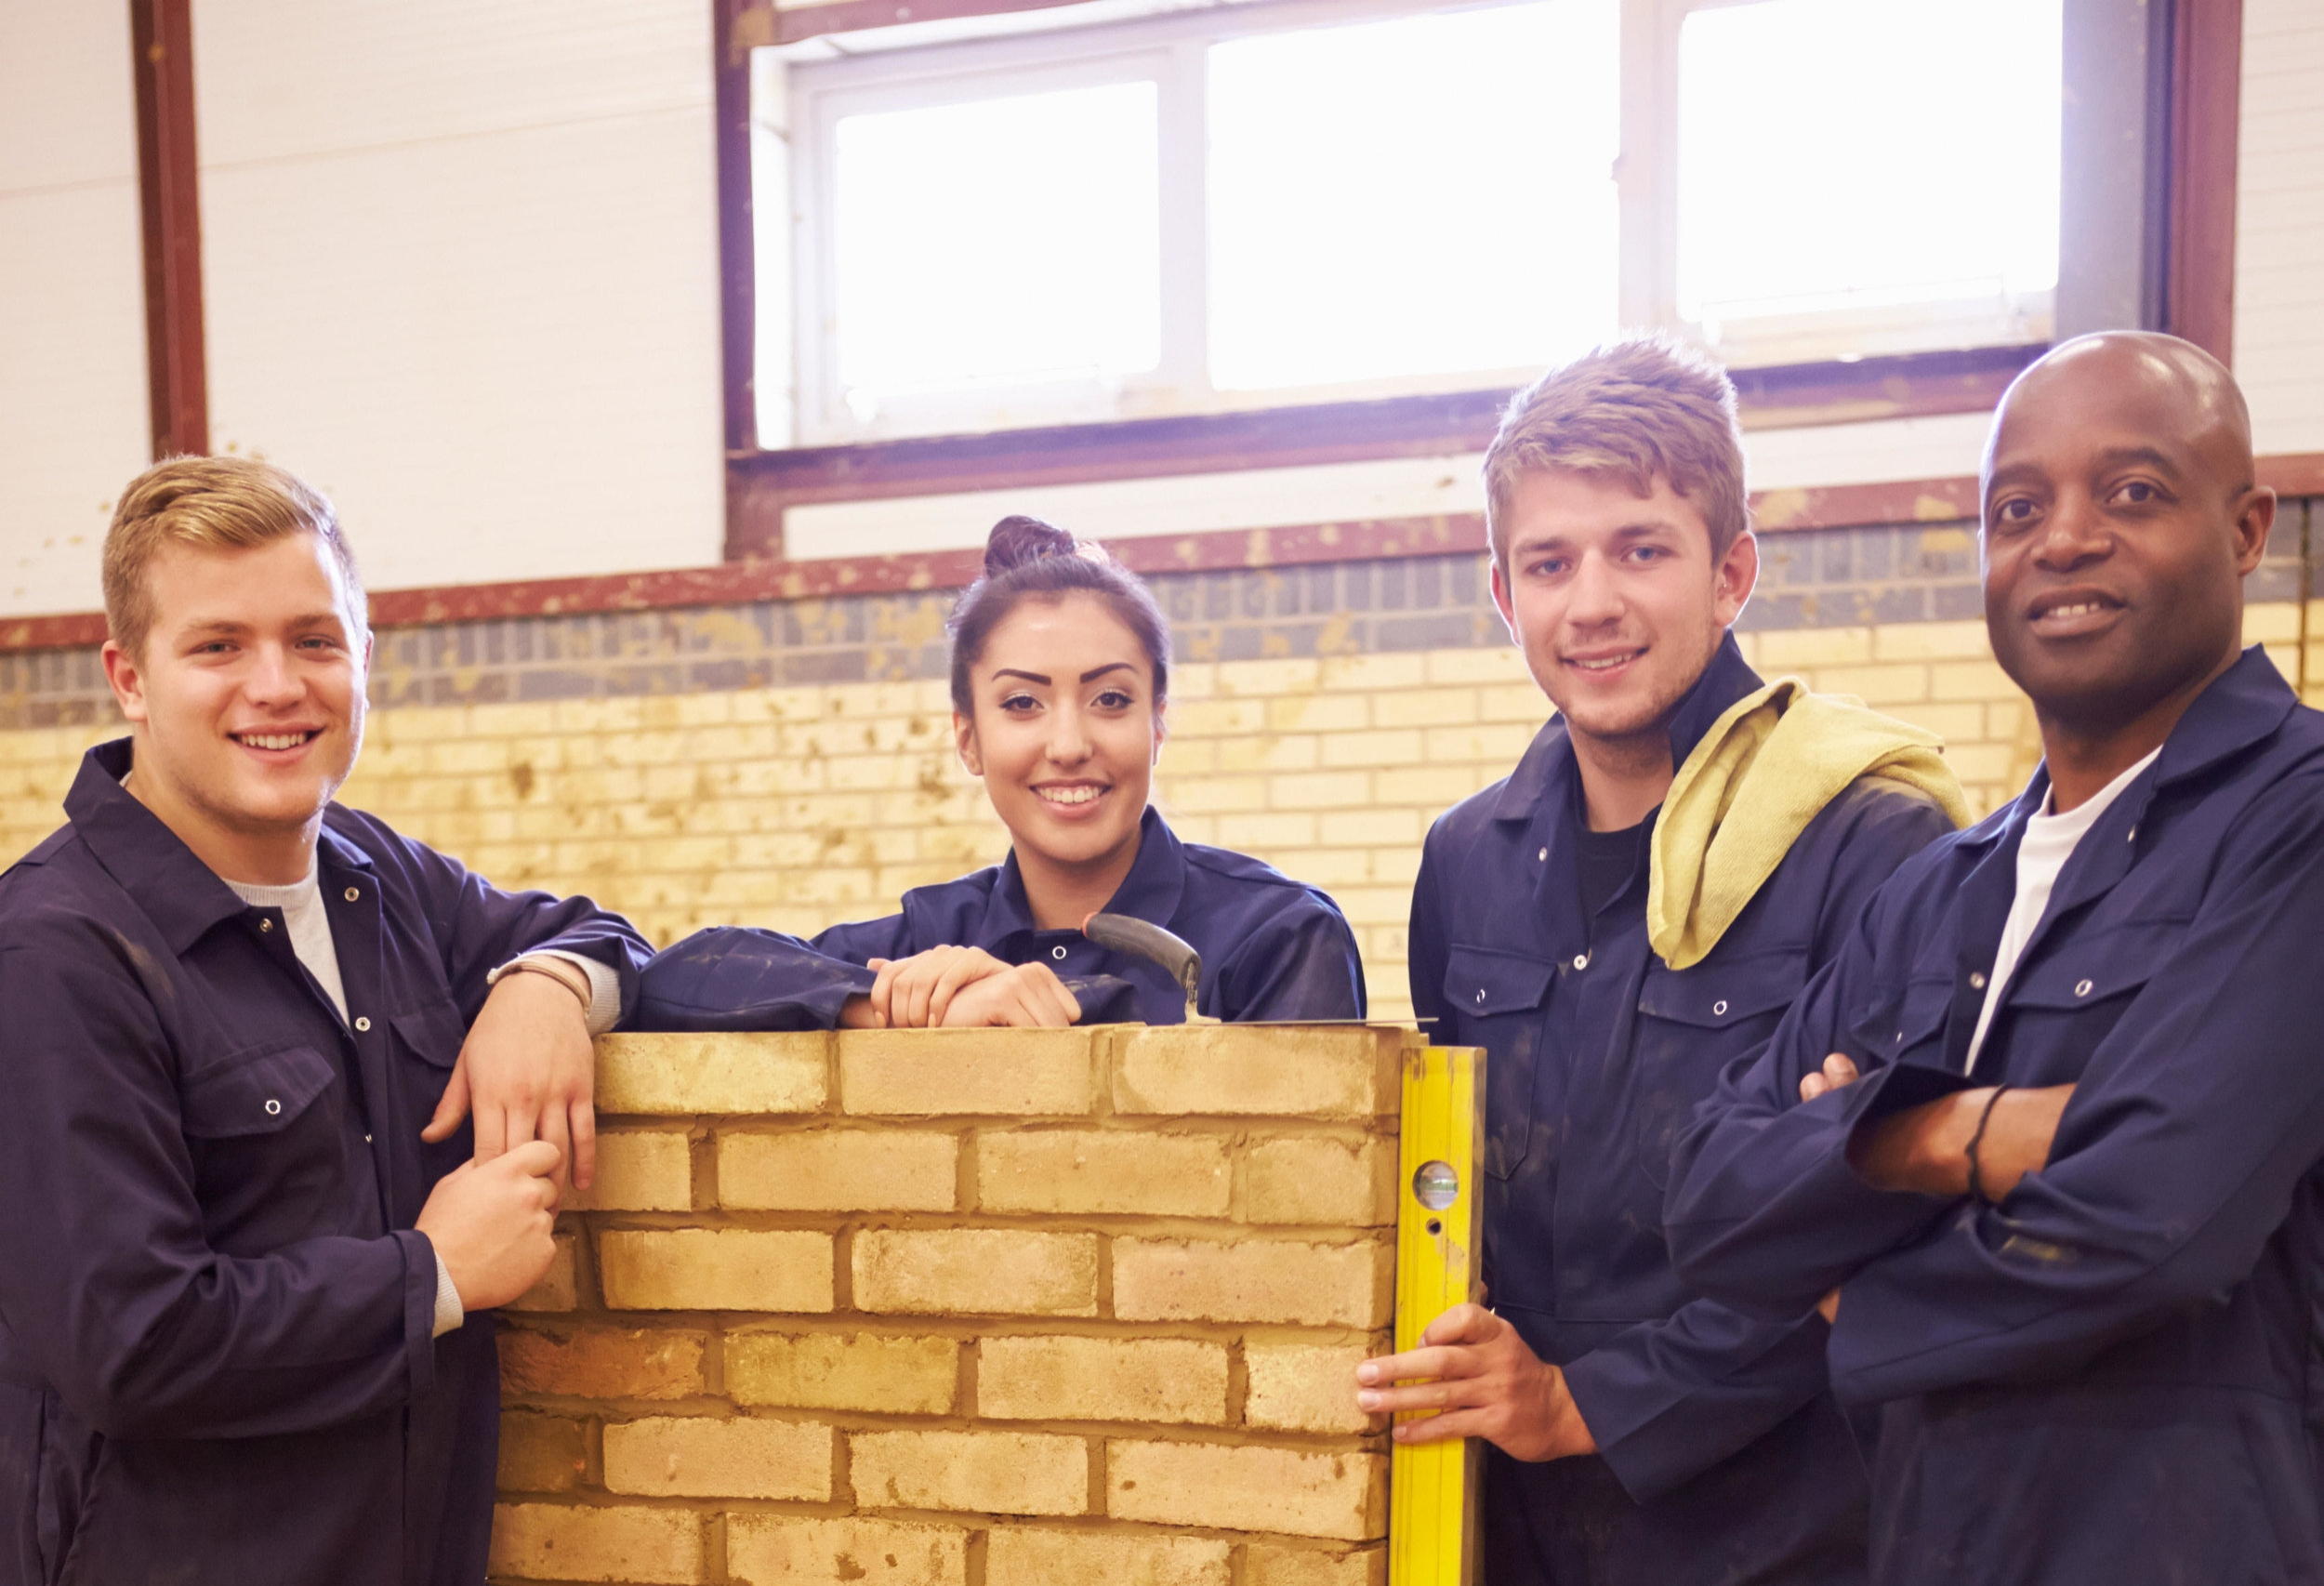 the Prince's Trust - Supports young people aged 16-30 to develop skills and confidence, and get a taste of new industry or work experience. Free courses. Drop in sessions every Thursday 1.30pm-3.30pm at Canningford House, 38 Victoria Street, Bristol, BS1 6BY.E: bristolcentre@princes-trust.org.ukT: 0117 943 4947